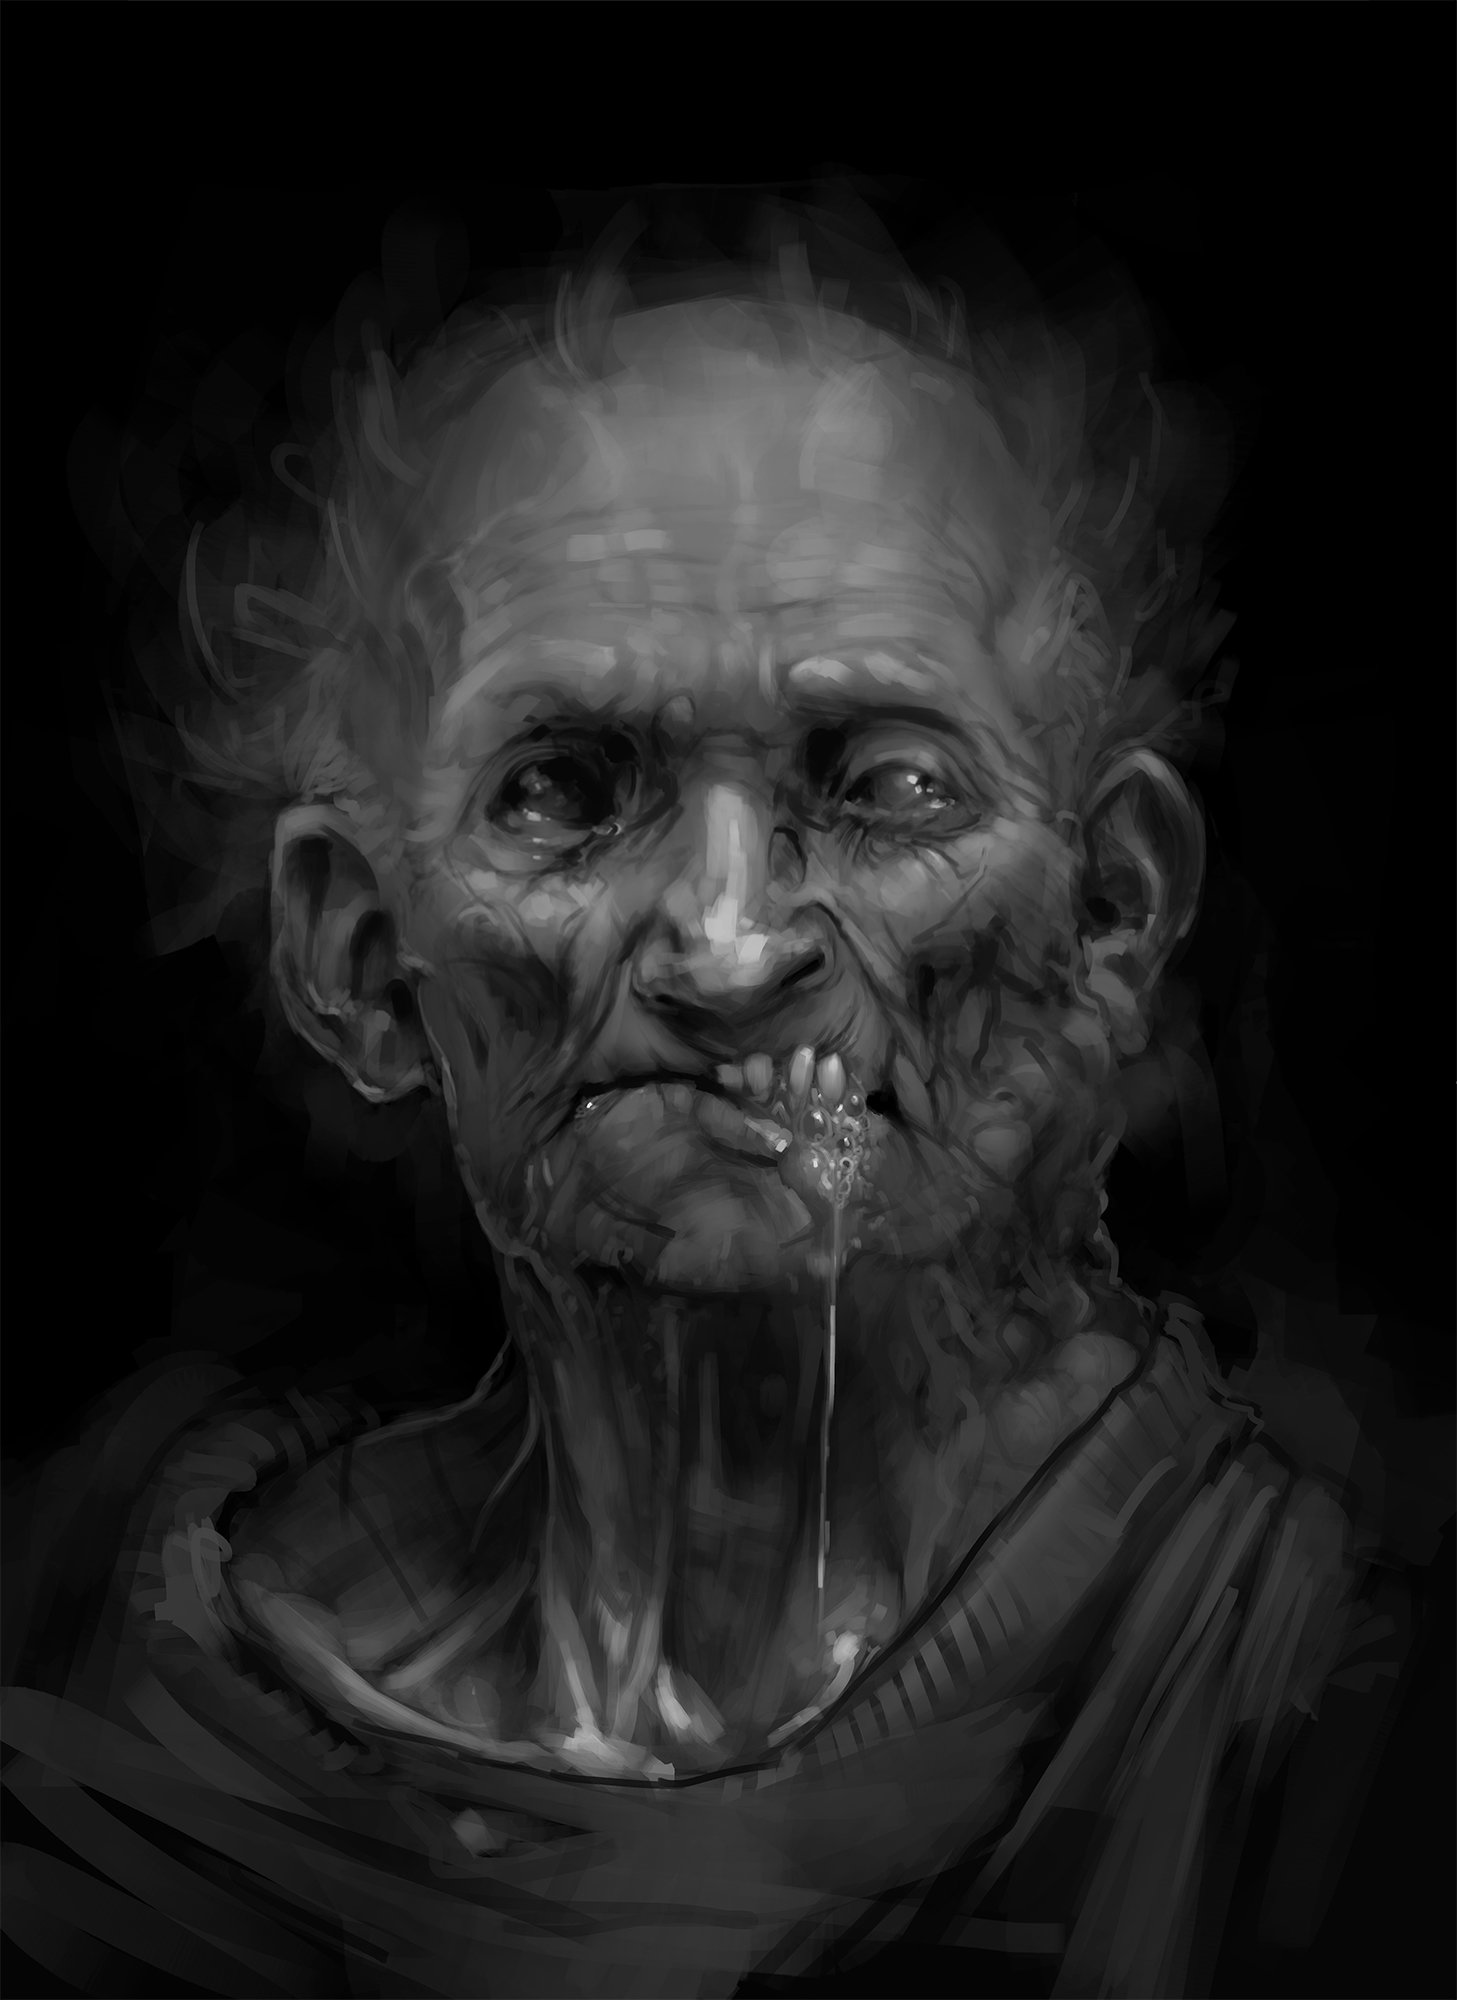 Sabbas Apterus illustration sweet old zombie man